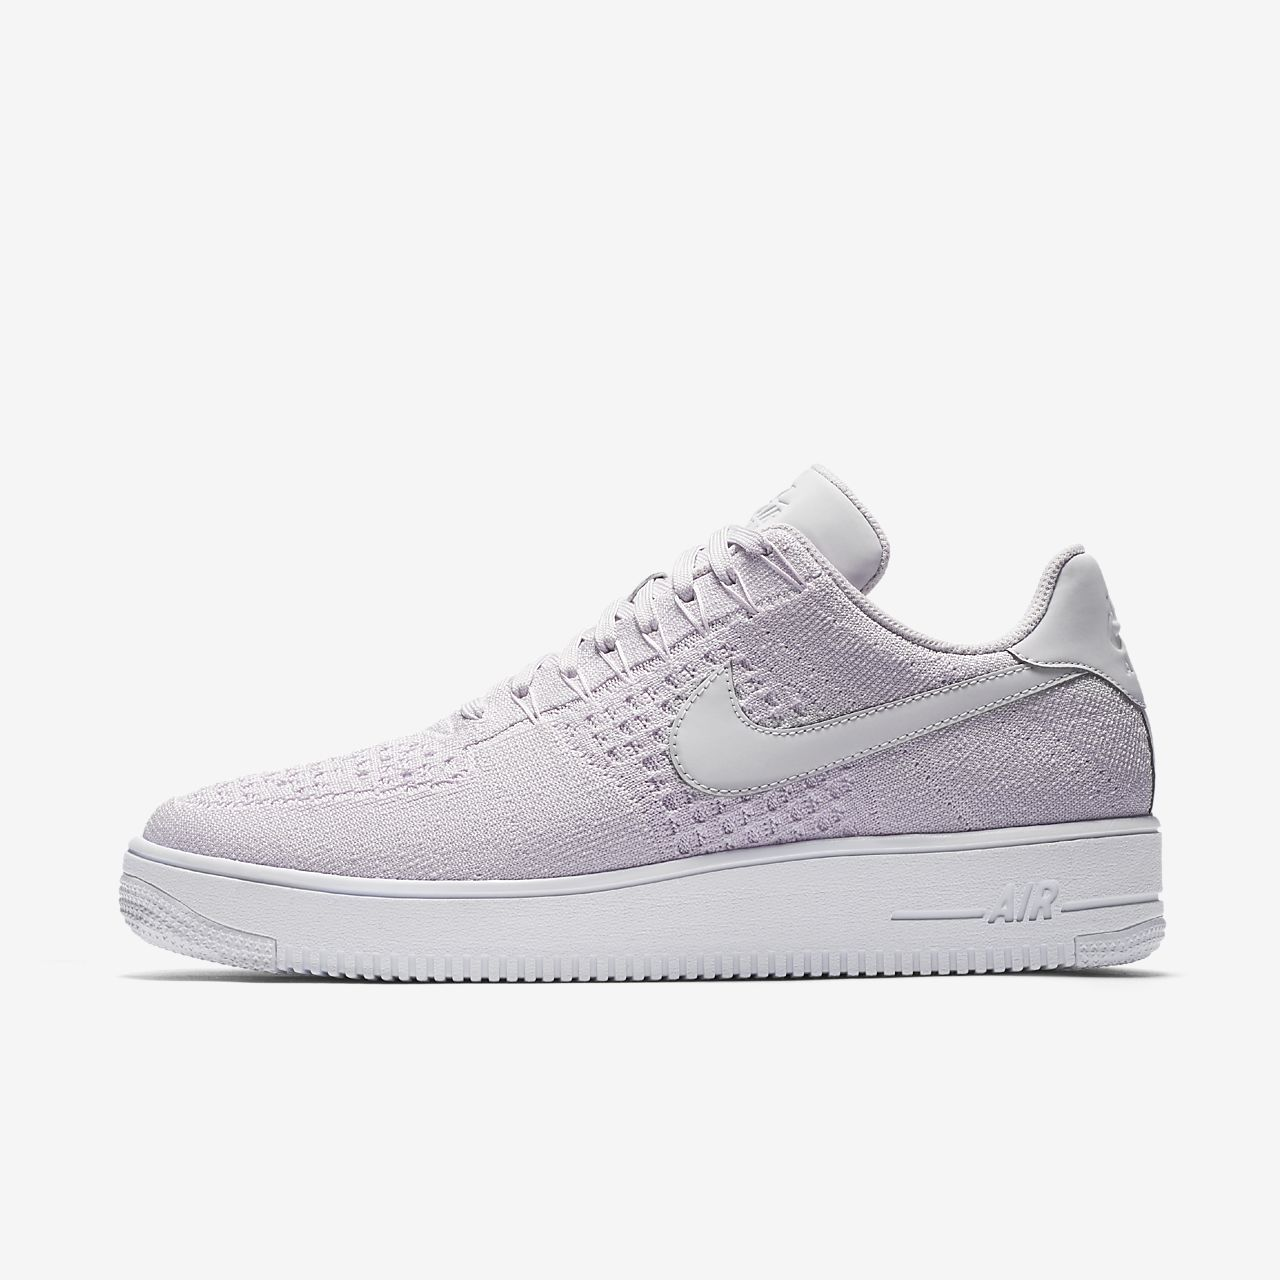 ... Chaussure Nike Air Force 1 Ultra Flyknit Low pour Homme